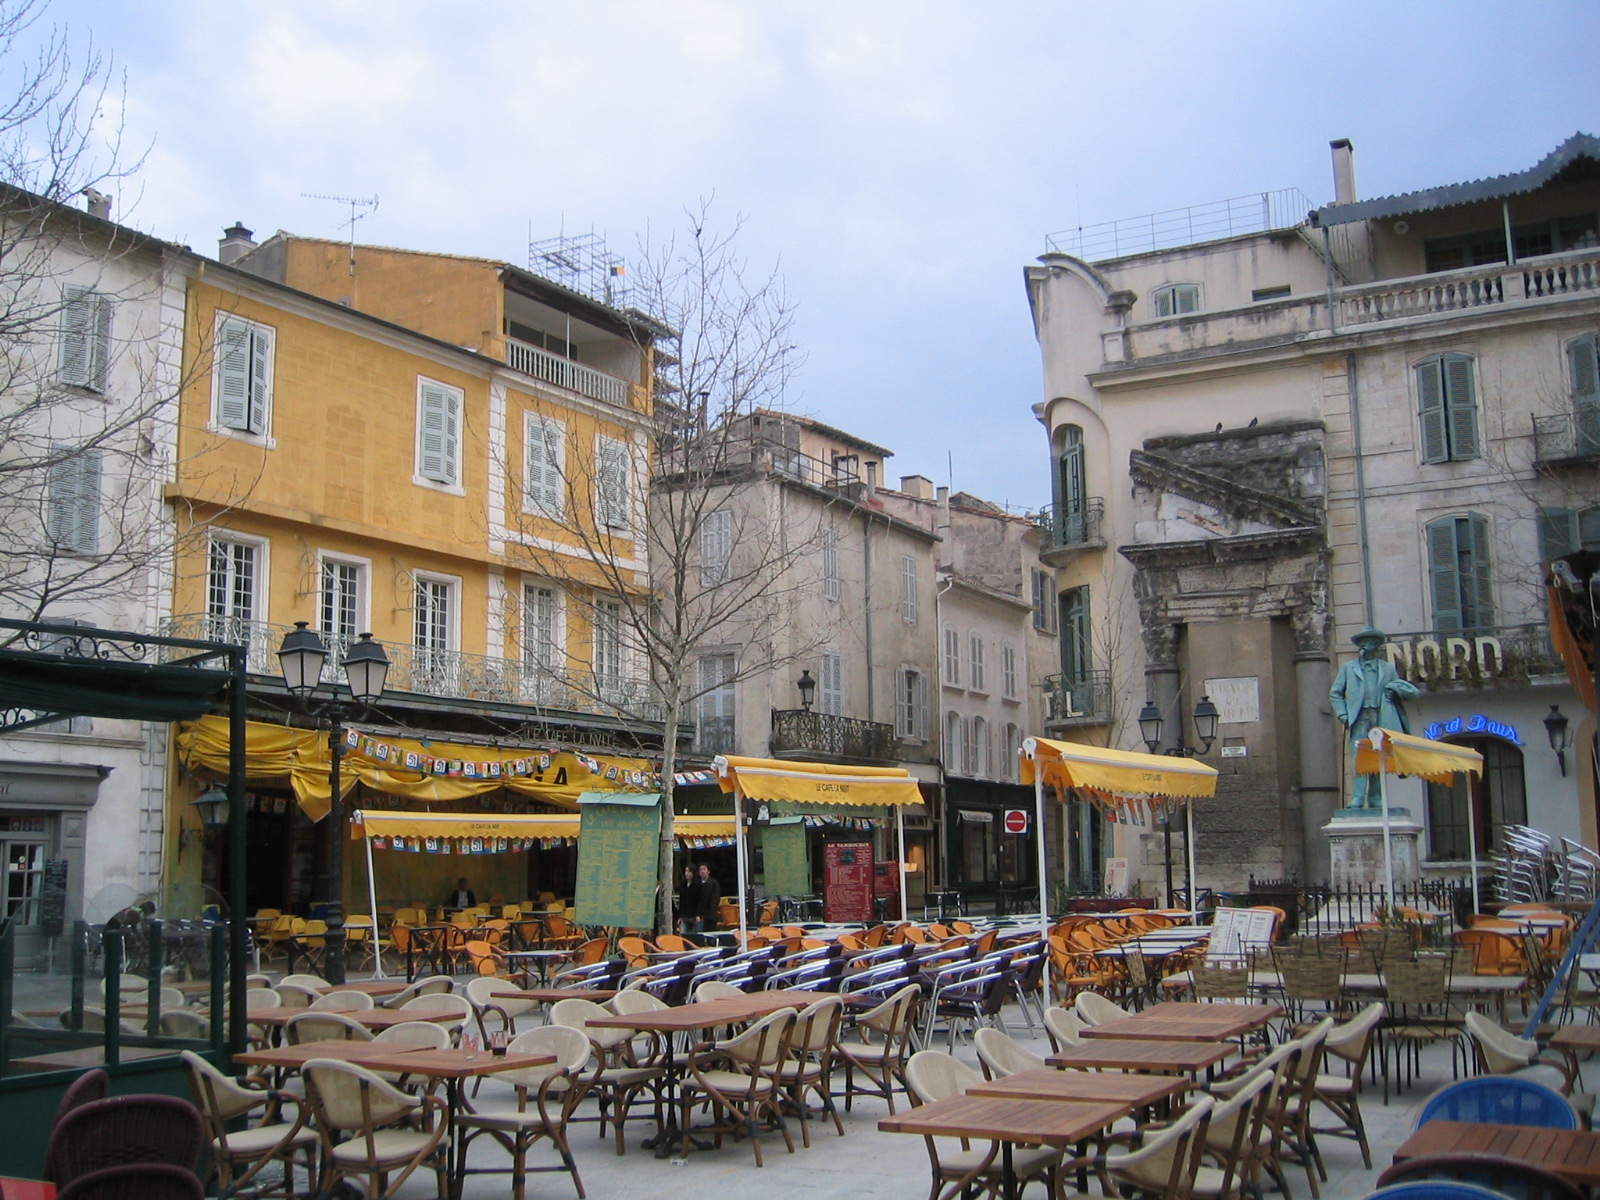 Arles-PlaceDuForum.jpg?1549449994